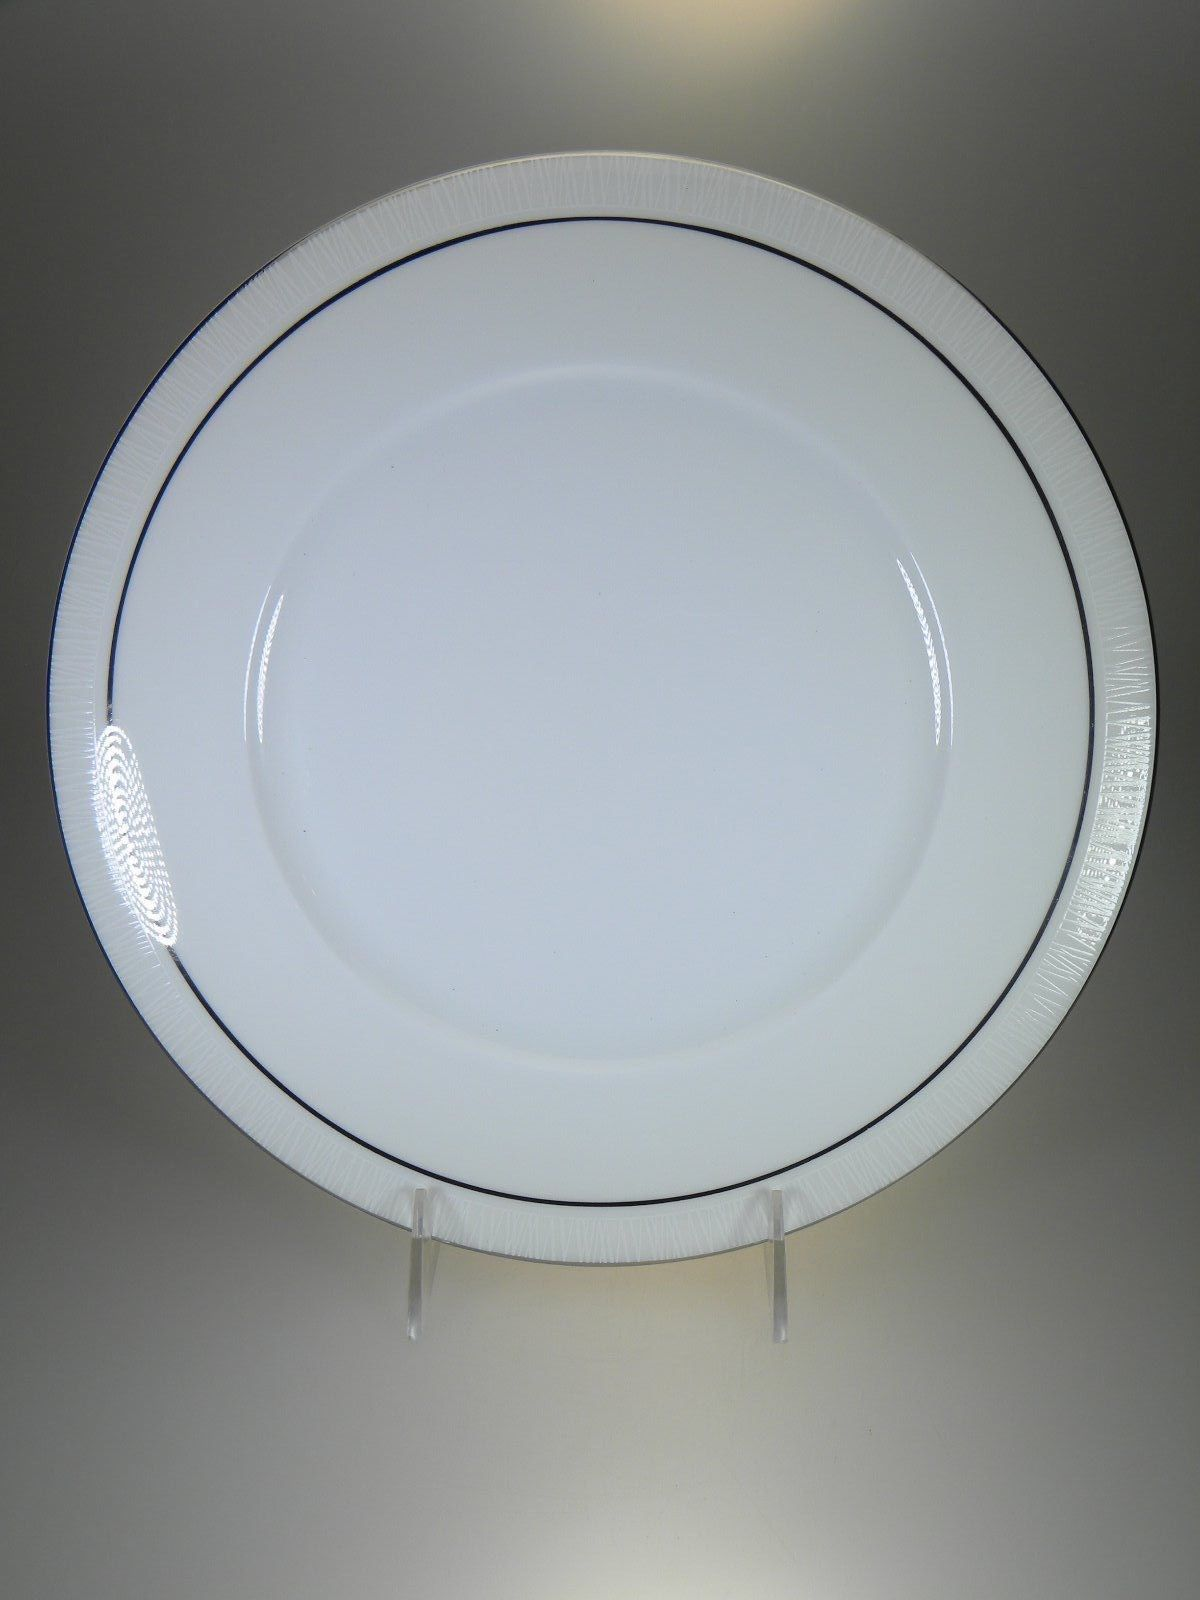 Vera Wang By Wedgwood Modern Graphic Dinner Plate NEW WITH TAGS Made in UK